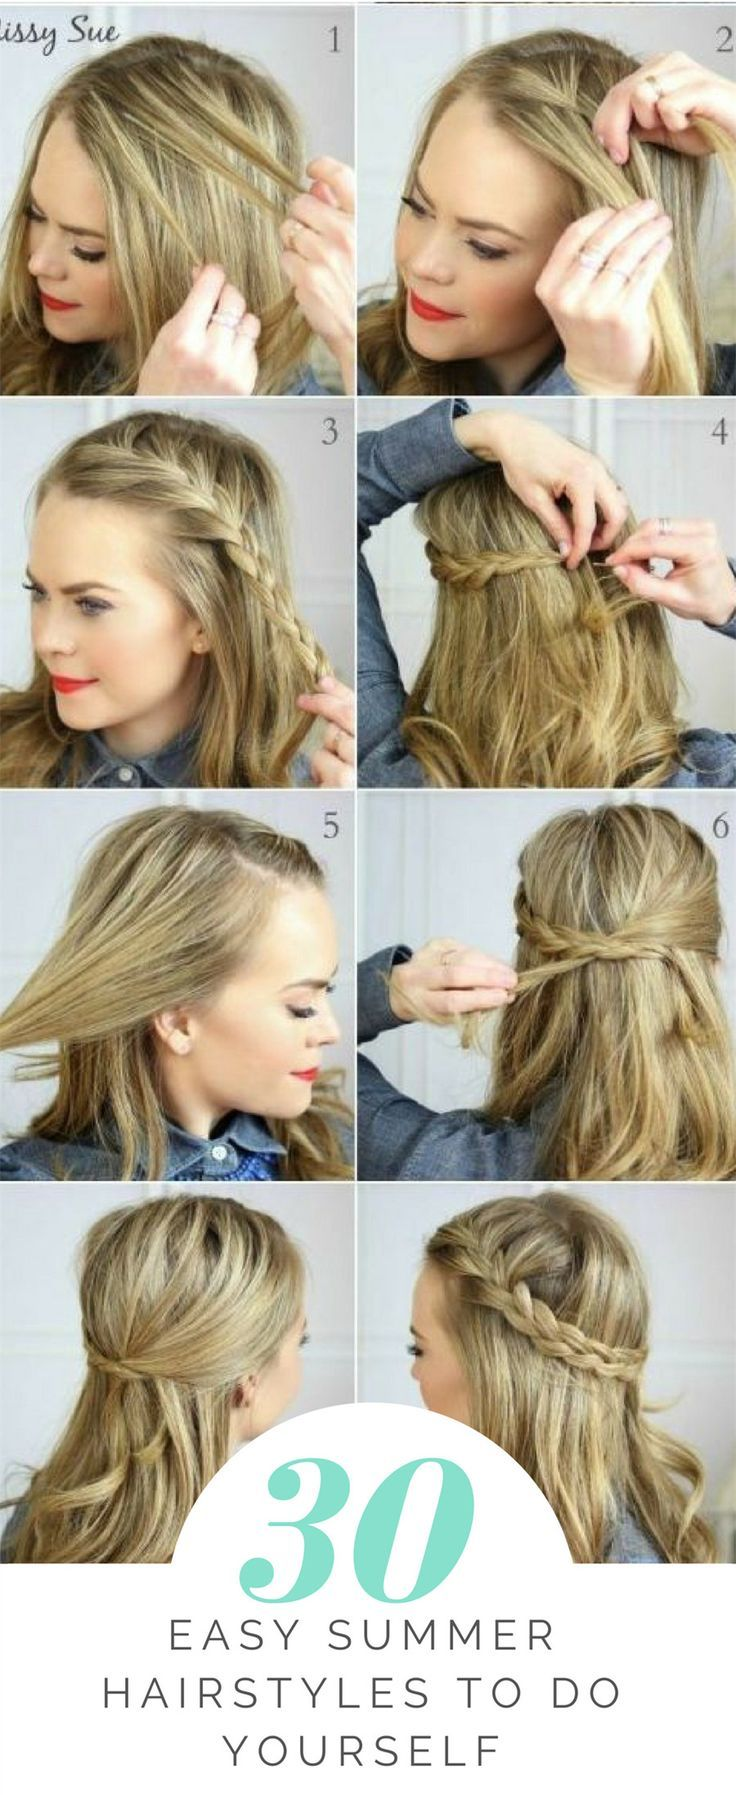 10+ Simple summer hairstyles for DIY  Easy hairstyles for medium